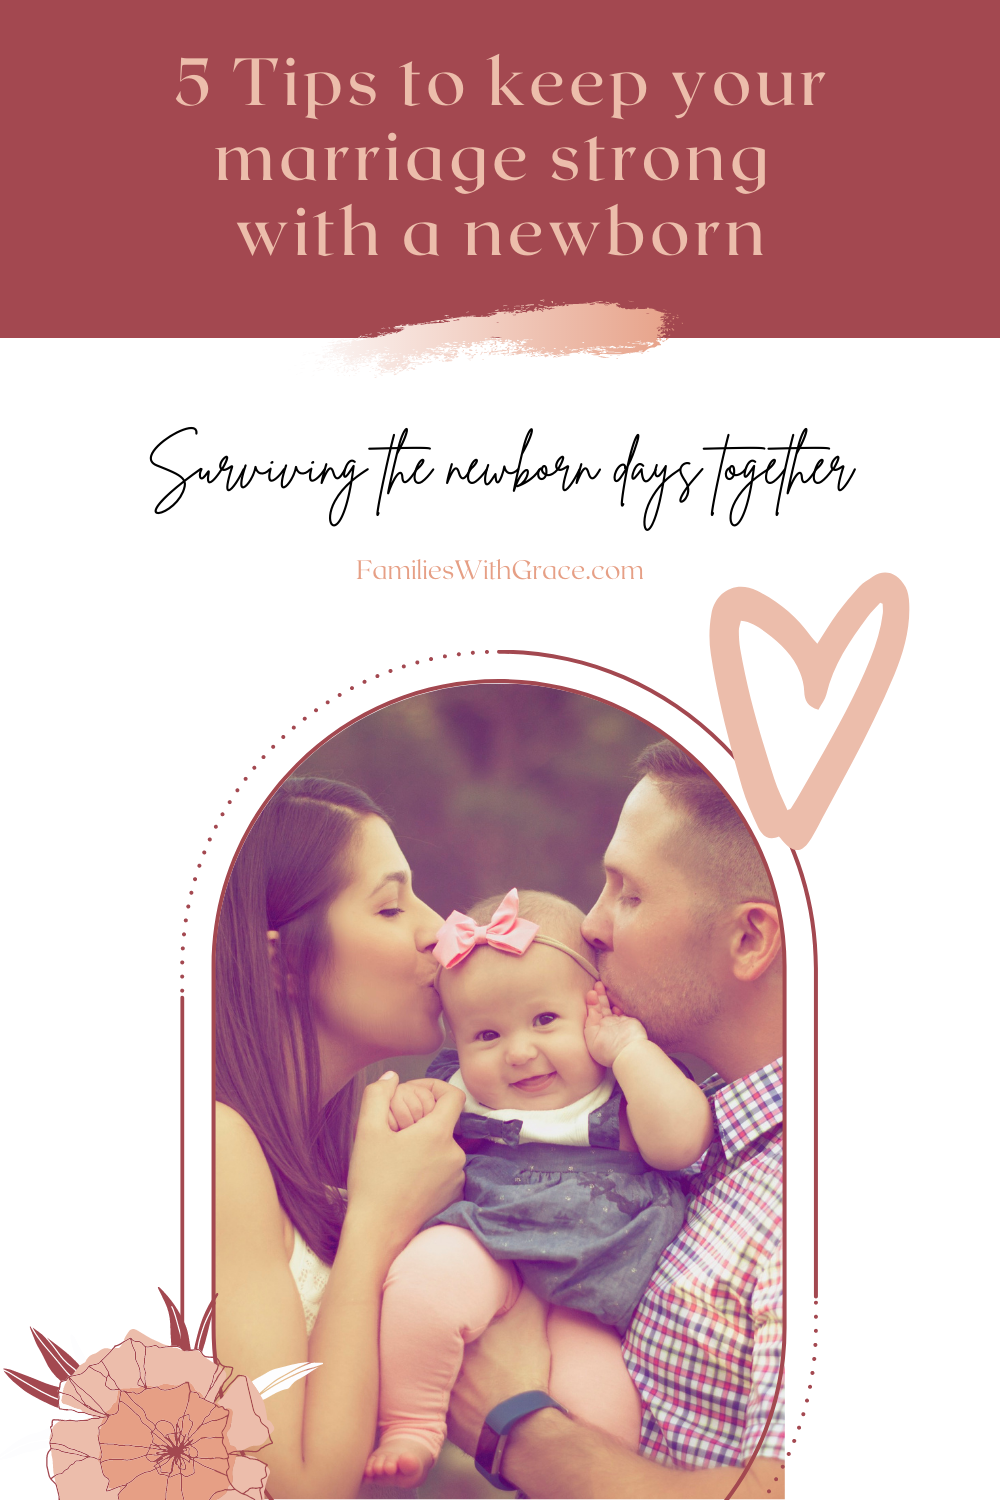 5 tips to keep your marriage strong with a newborn